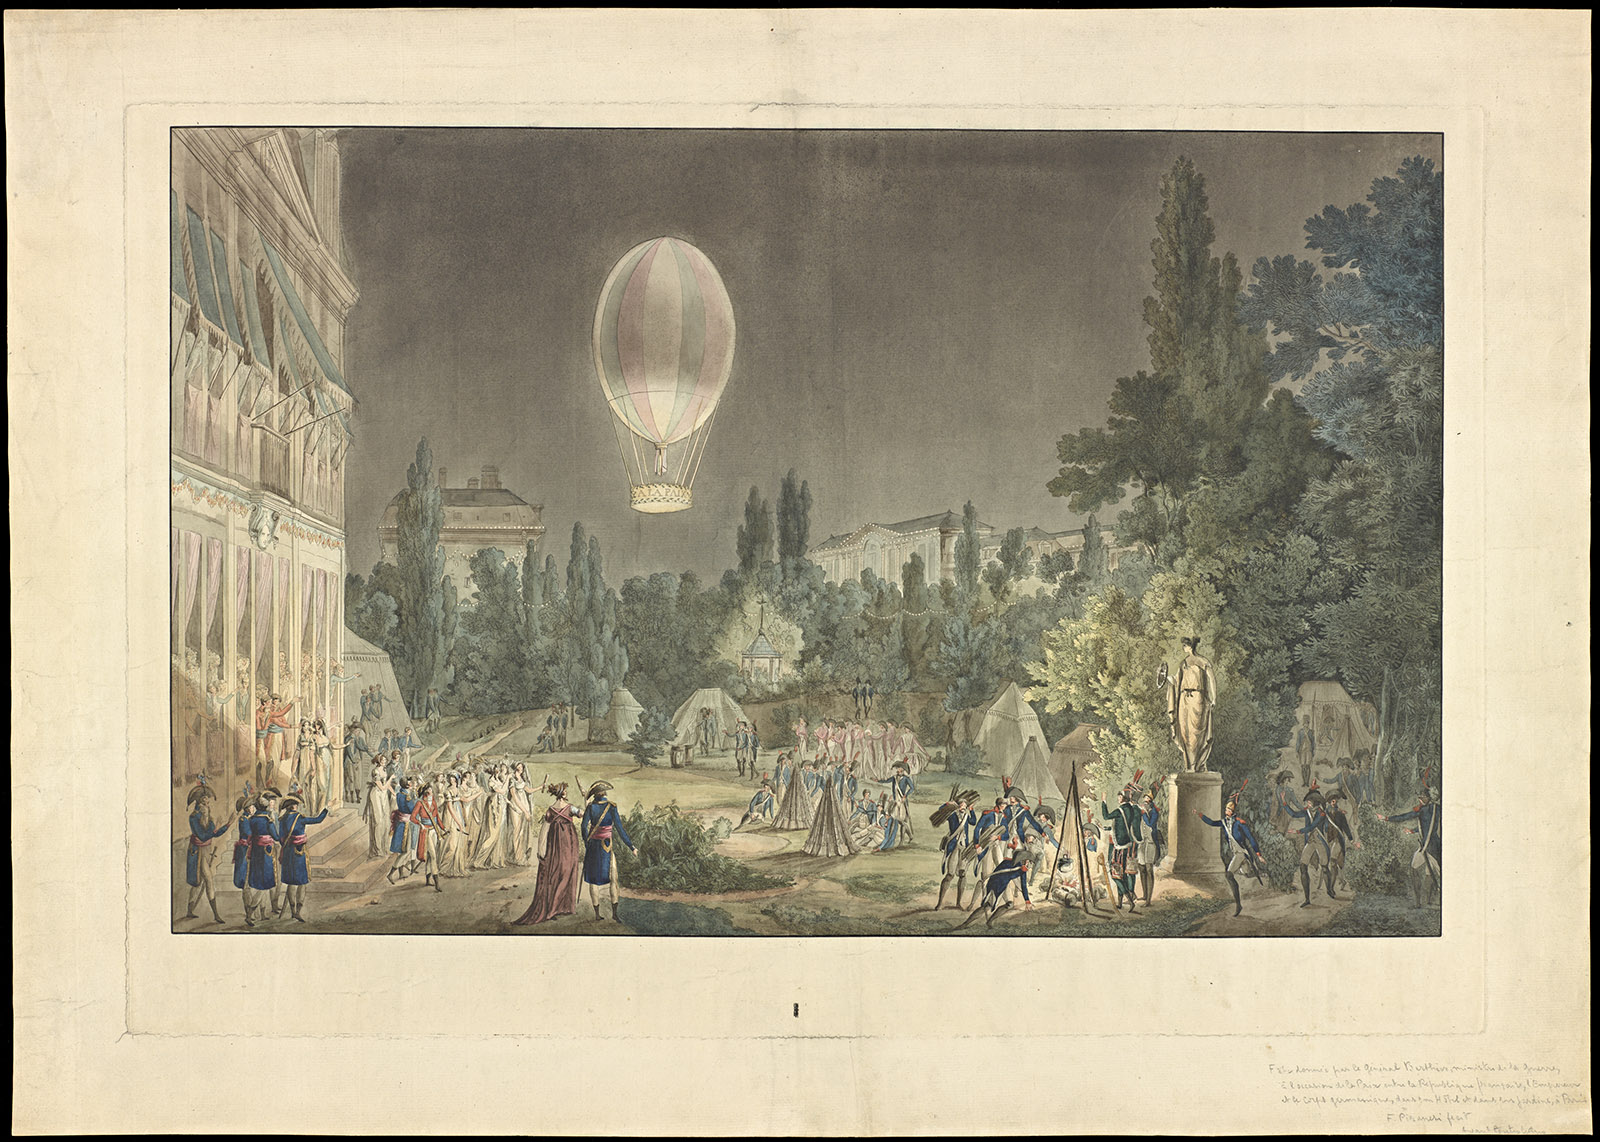 A print of a night scape featuring a hot air balloon.